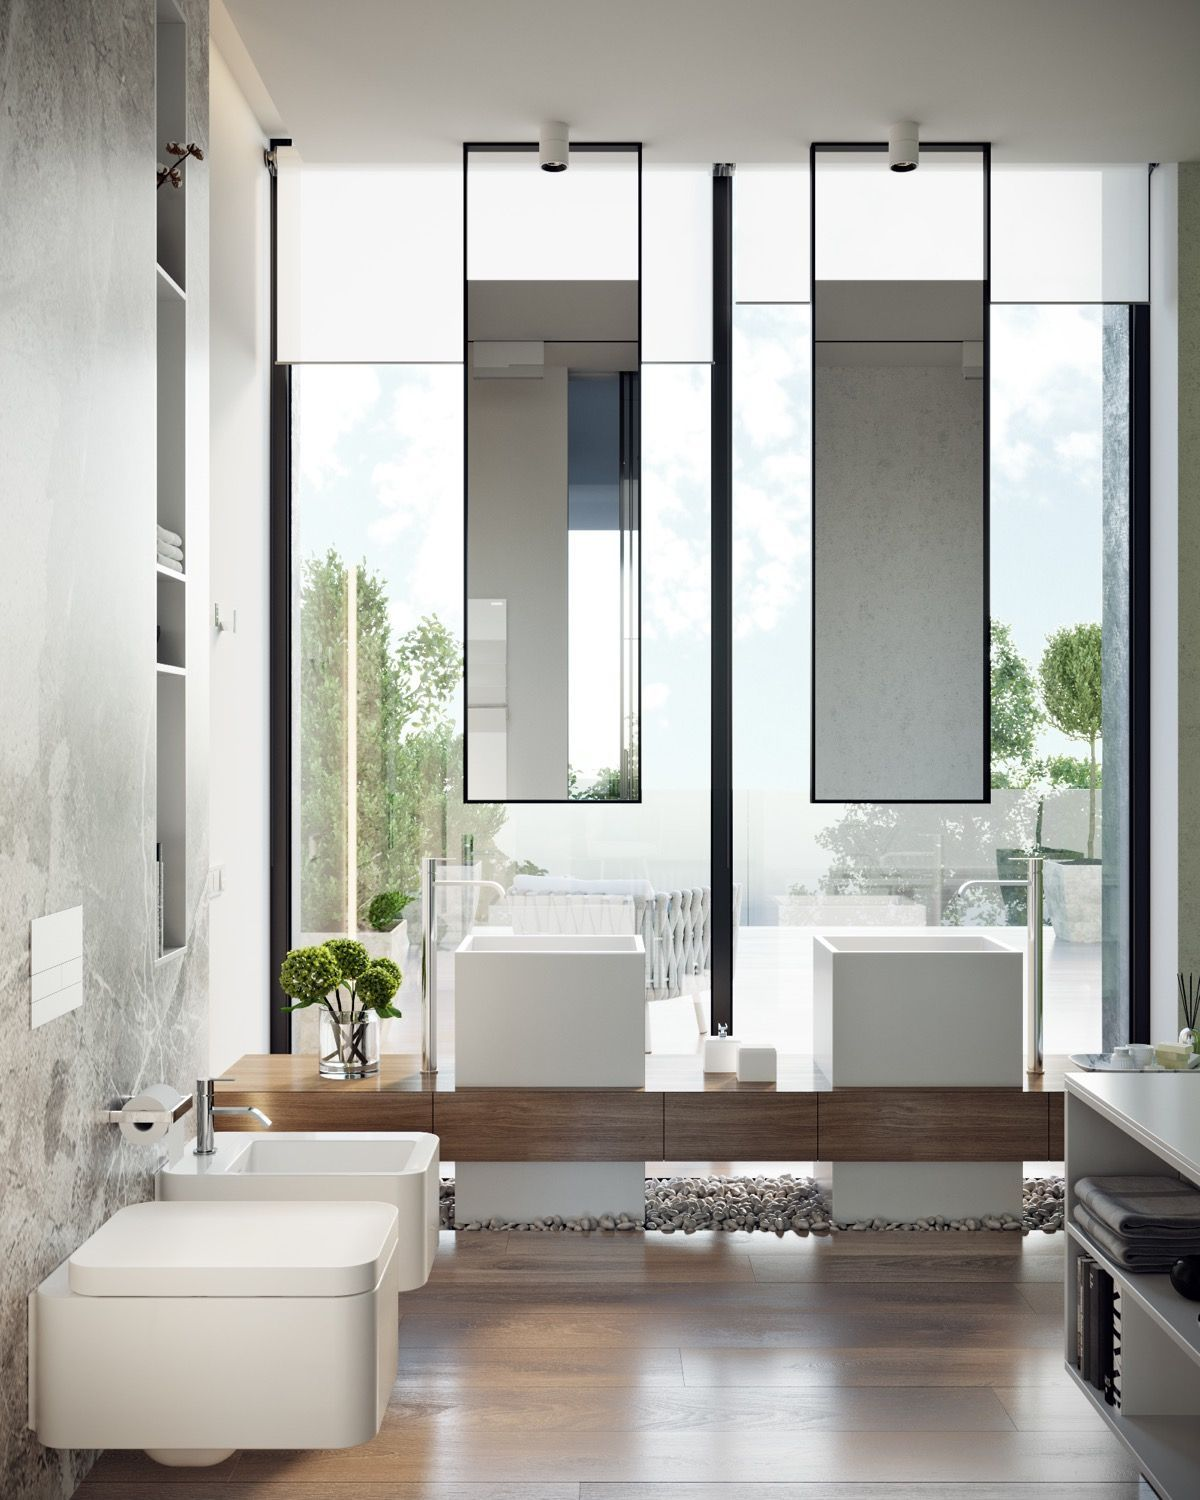 modern luxury bathroom design ideas for your home | www.bocadolobo ...